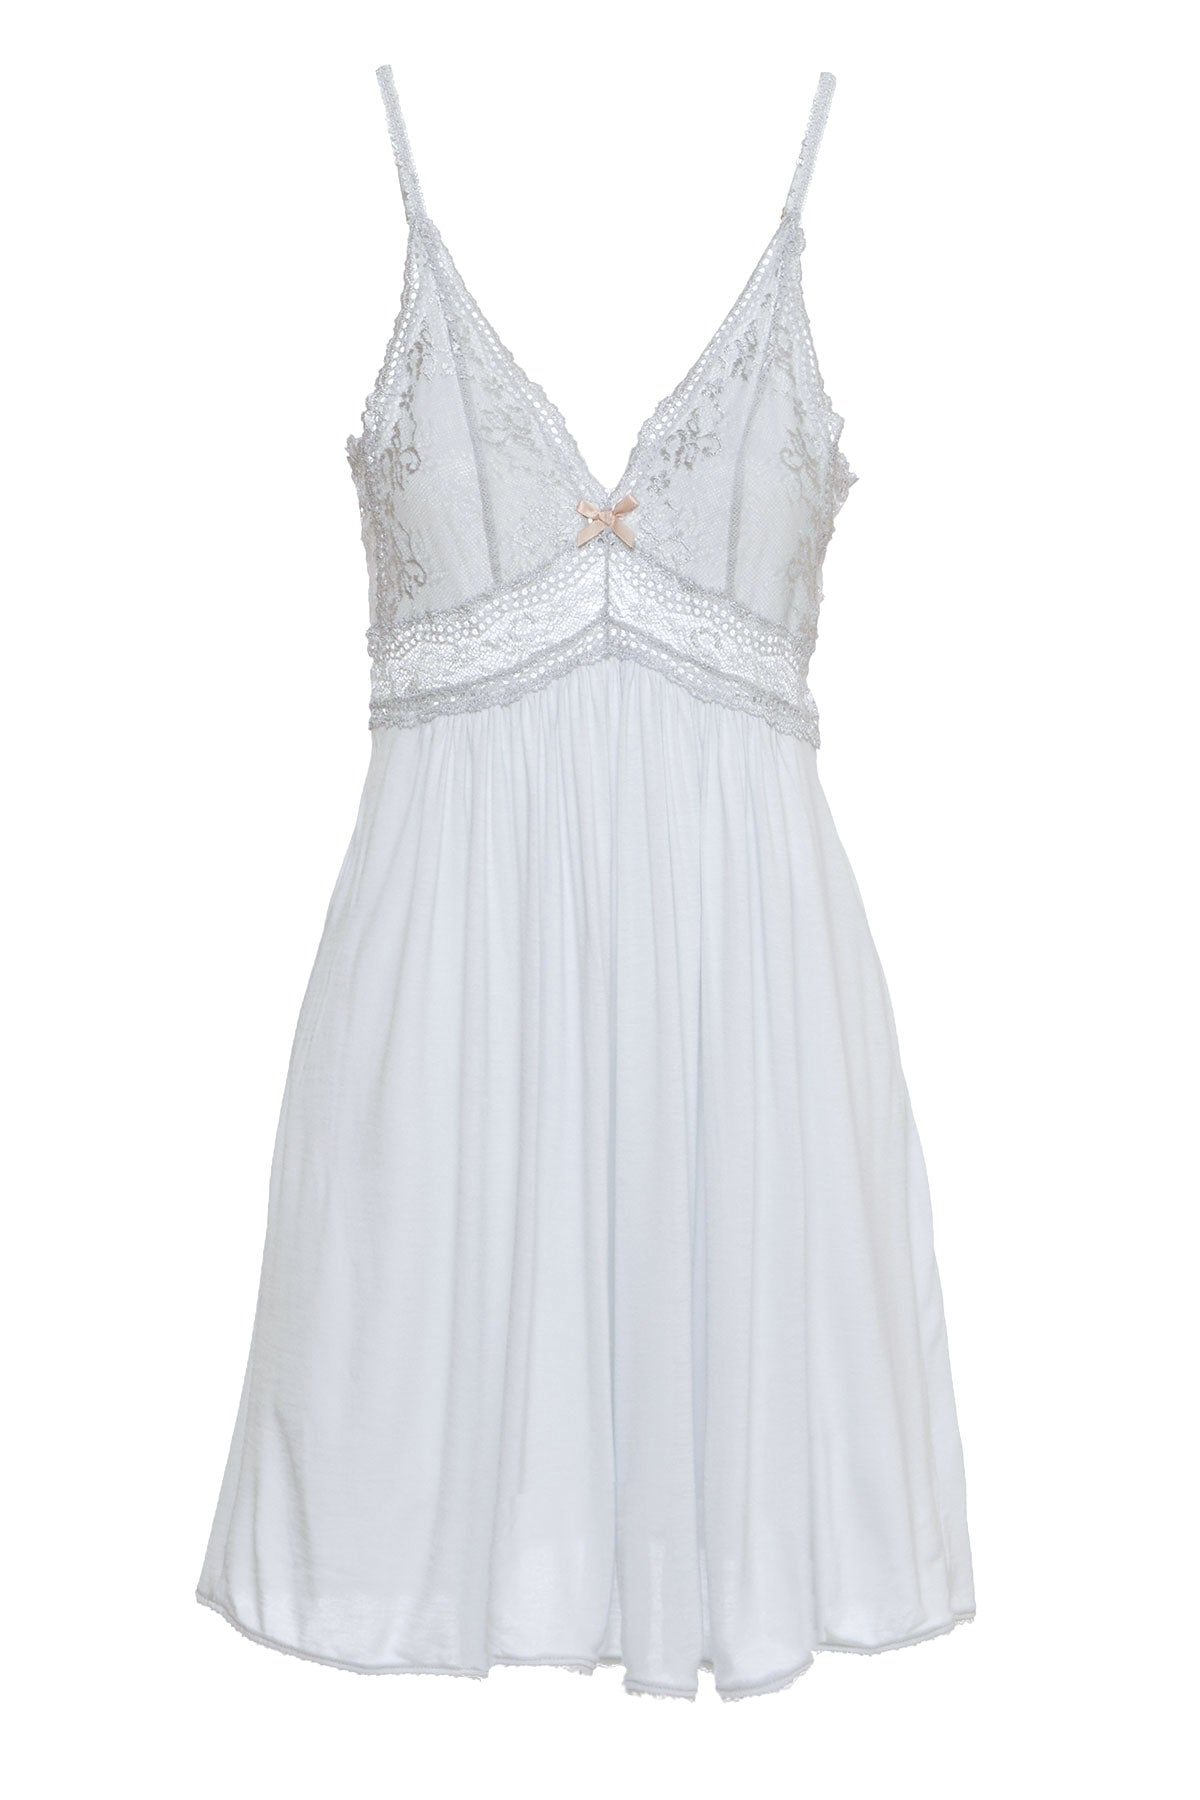 Find this Eberjey Colette chemise in steam blue at Knickers & Pearls Boutique